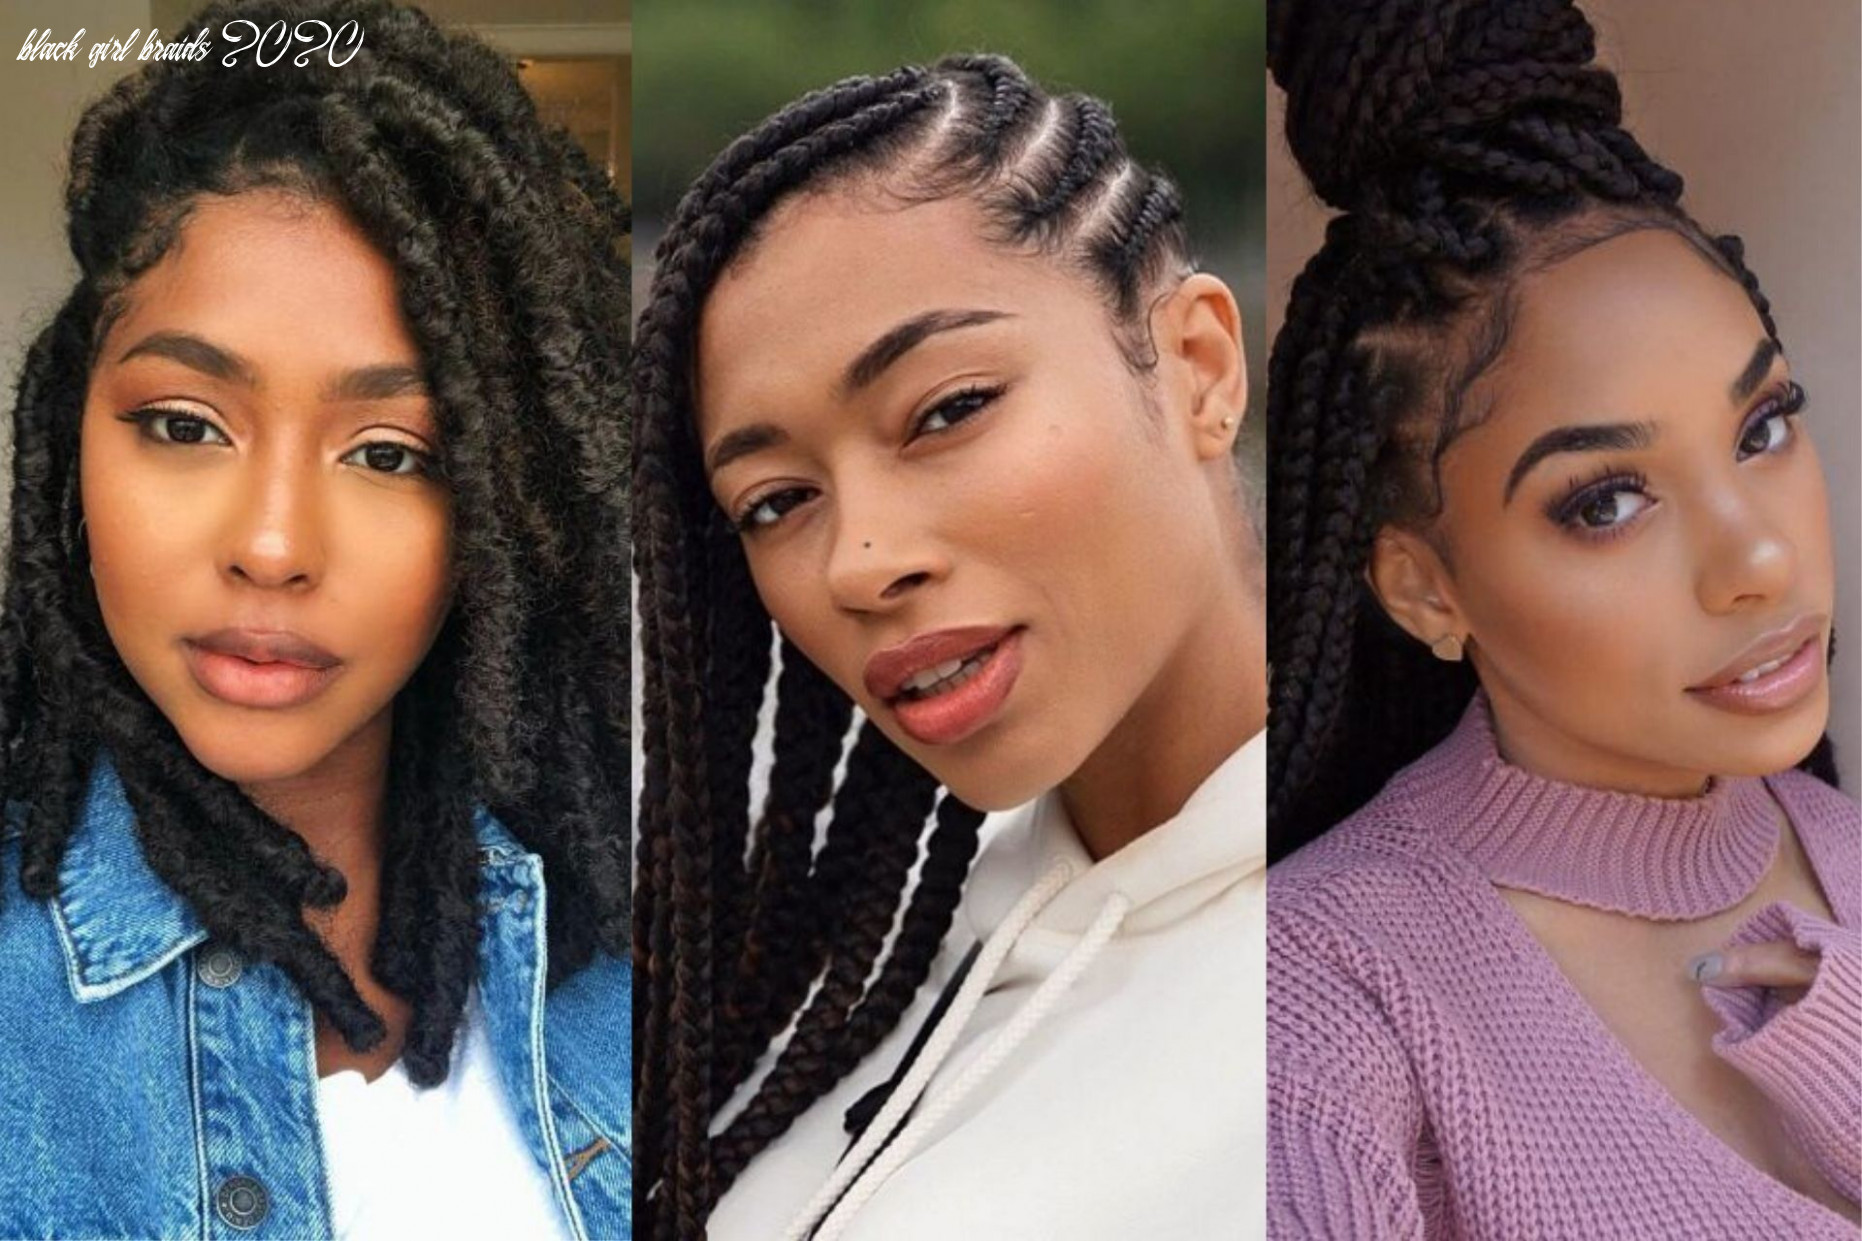 12 best braided hairstyles for black women to try in 12 black girl braids 2020